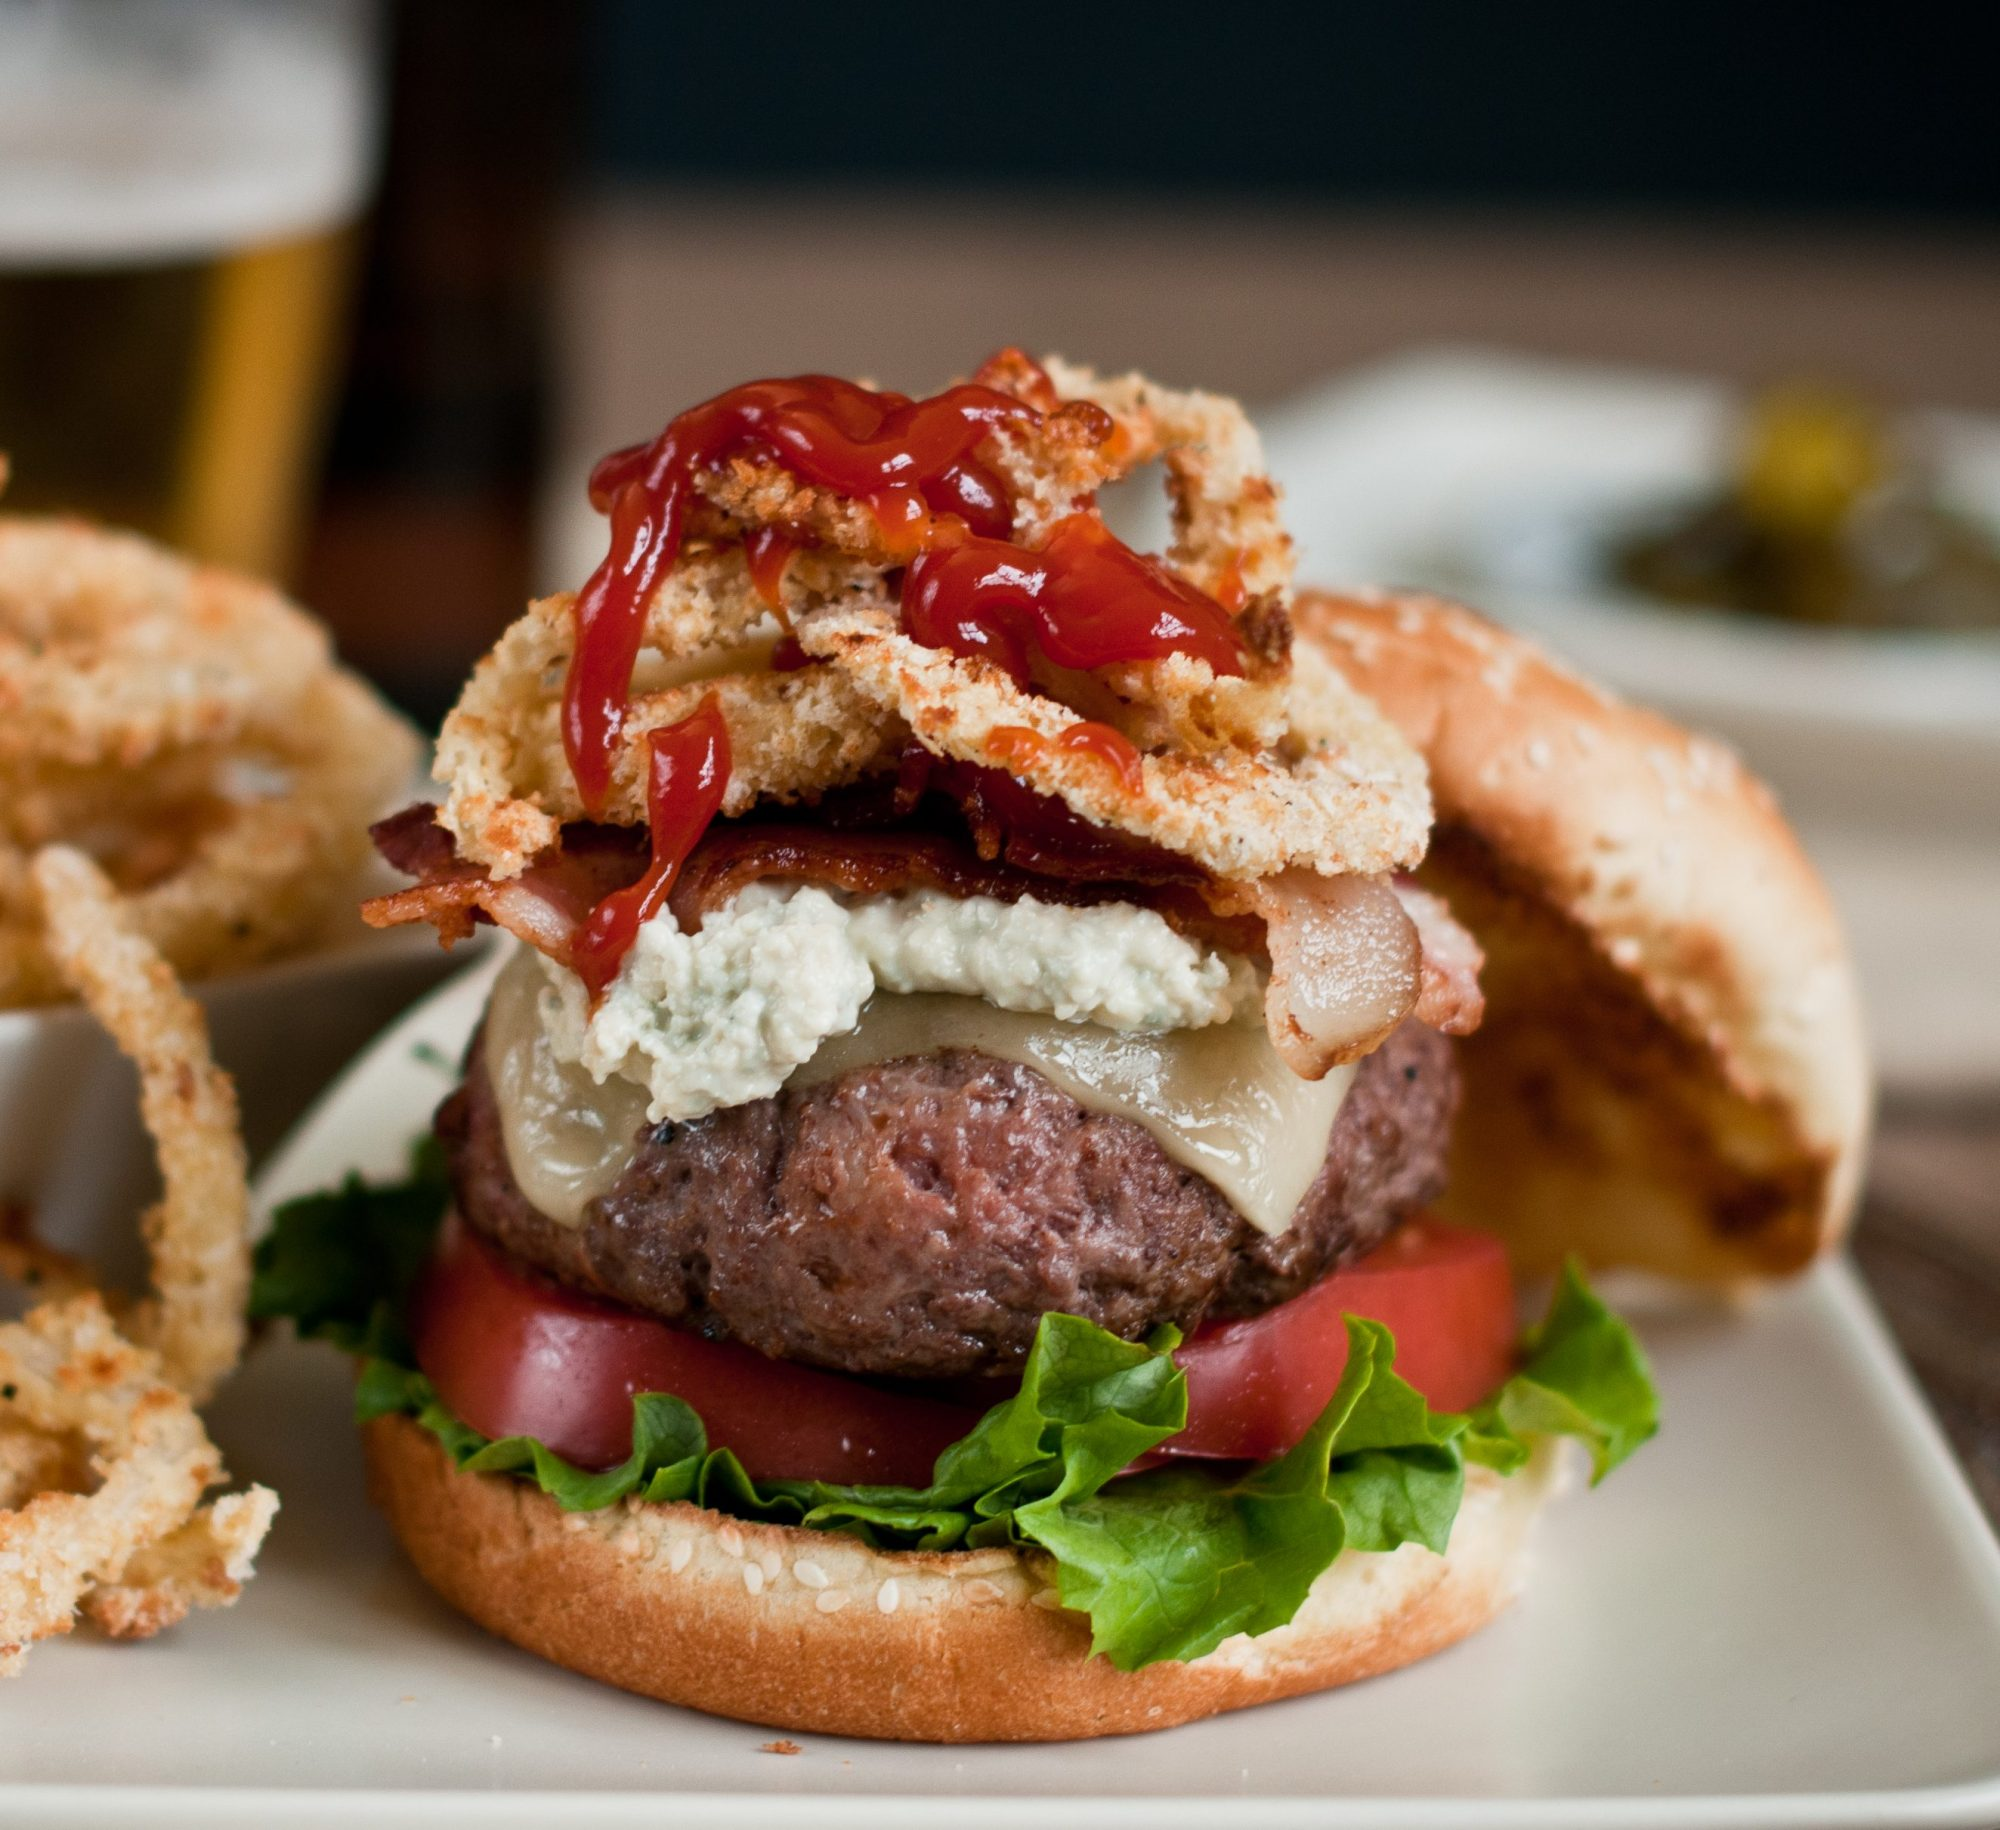 Bacon burger with blue cheese sauce